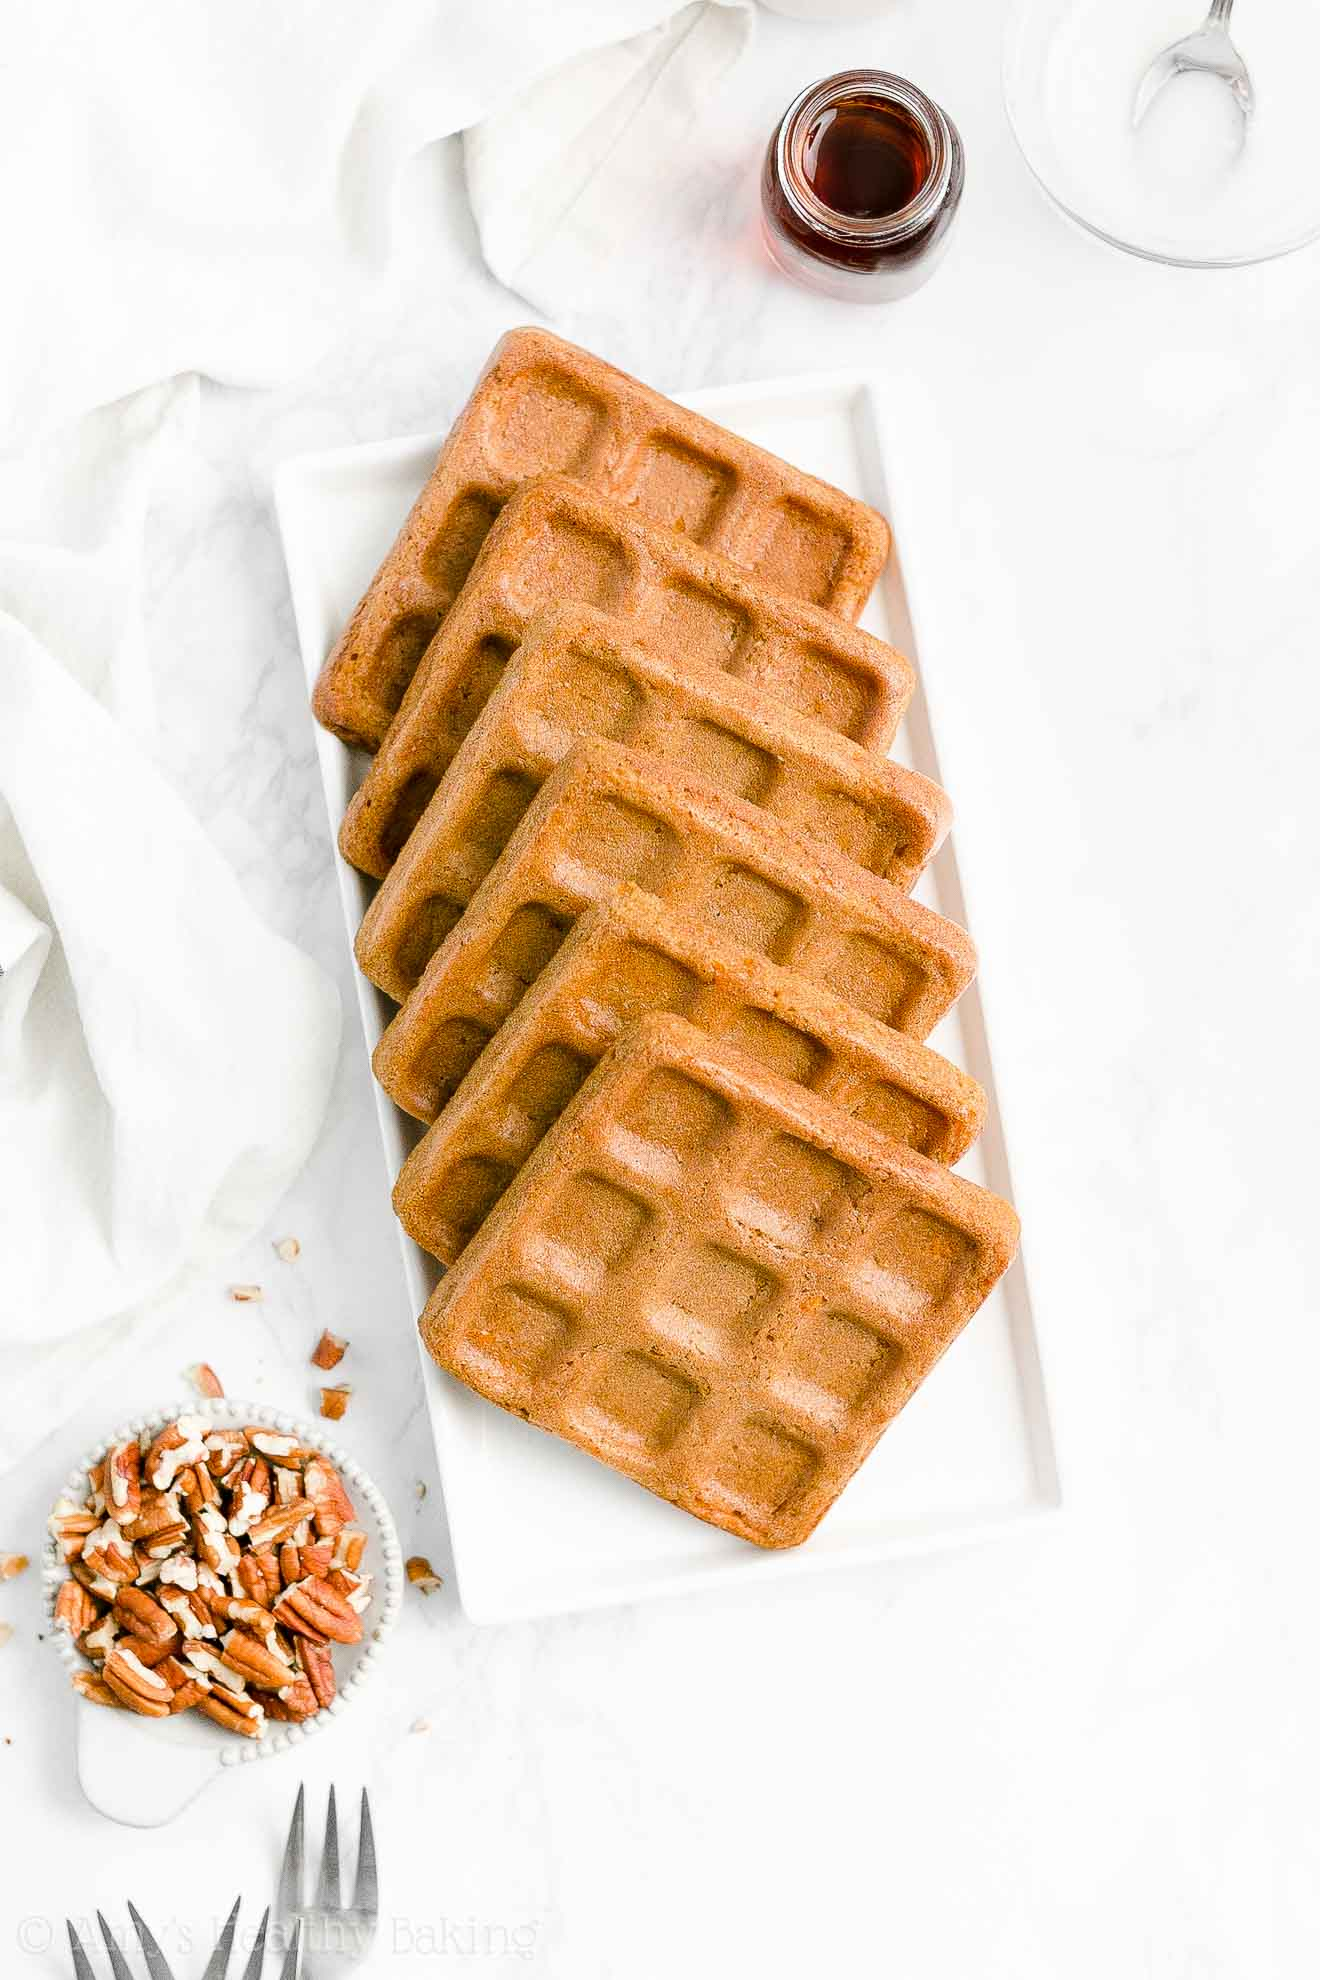 Easy Healthy Clean Eating Crispy Fluffy Whole Wheat Carrot Cake Waffles